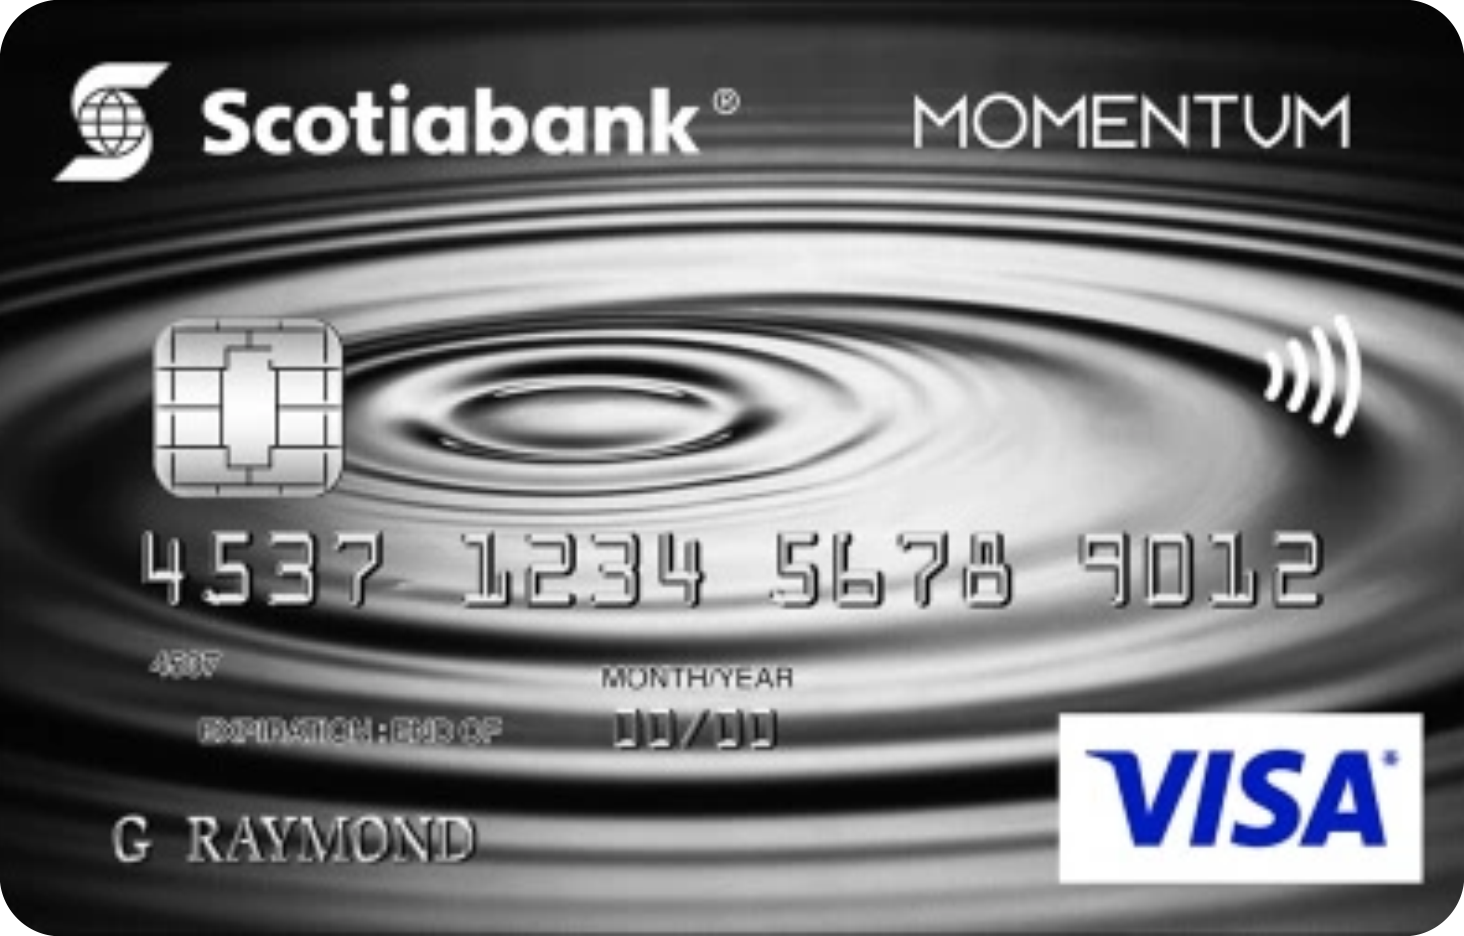 Scotia Momentum® No-Fee Visa® Card